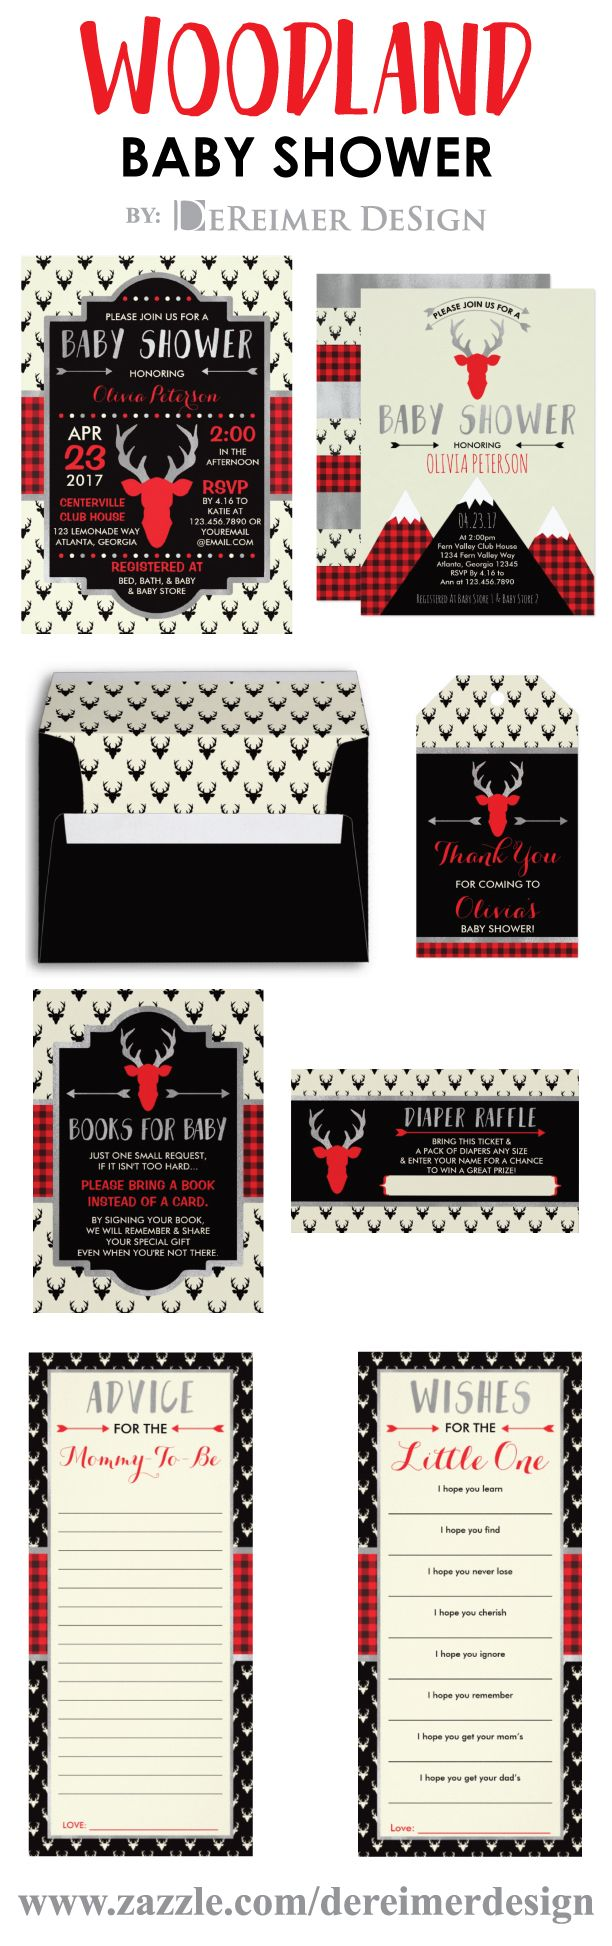 Woodland Baby Shower, Red, Black, Silver, Plaid, Antlers, Arrows